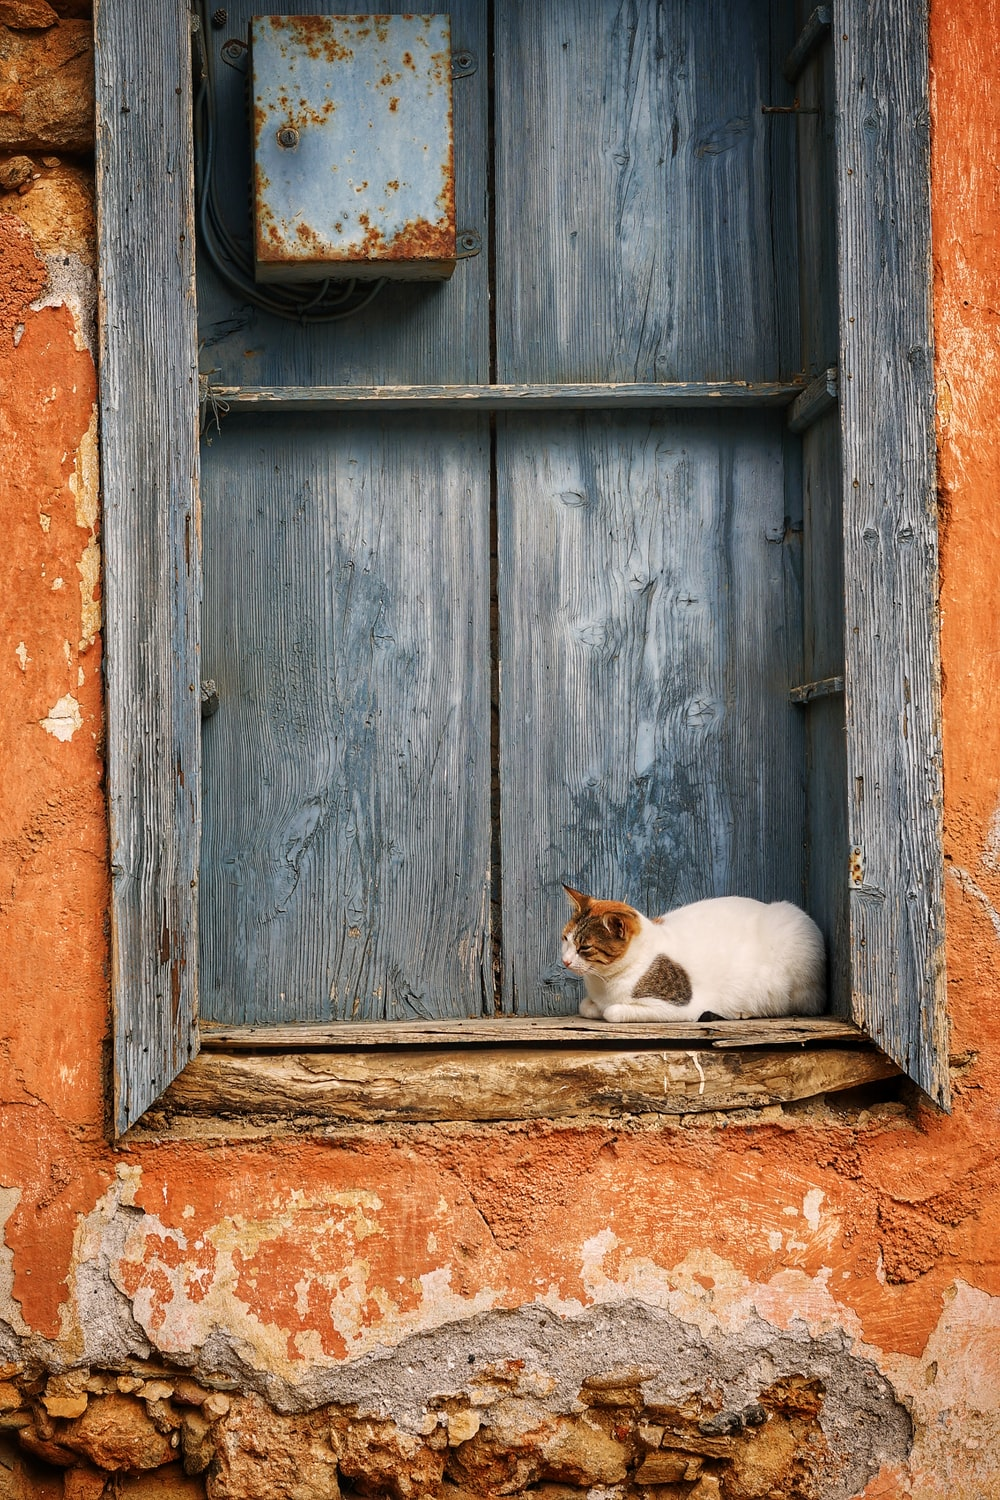 white cat sitting front of wooden window